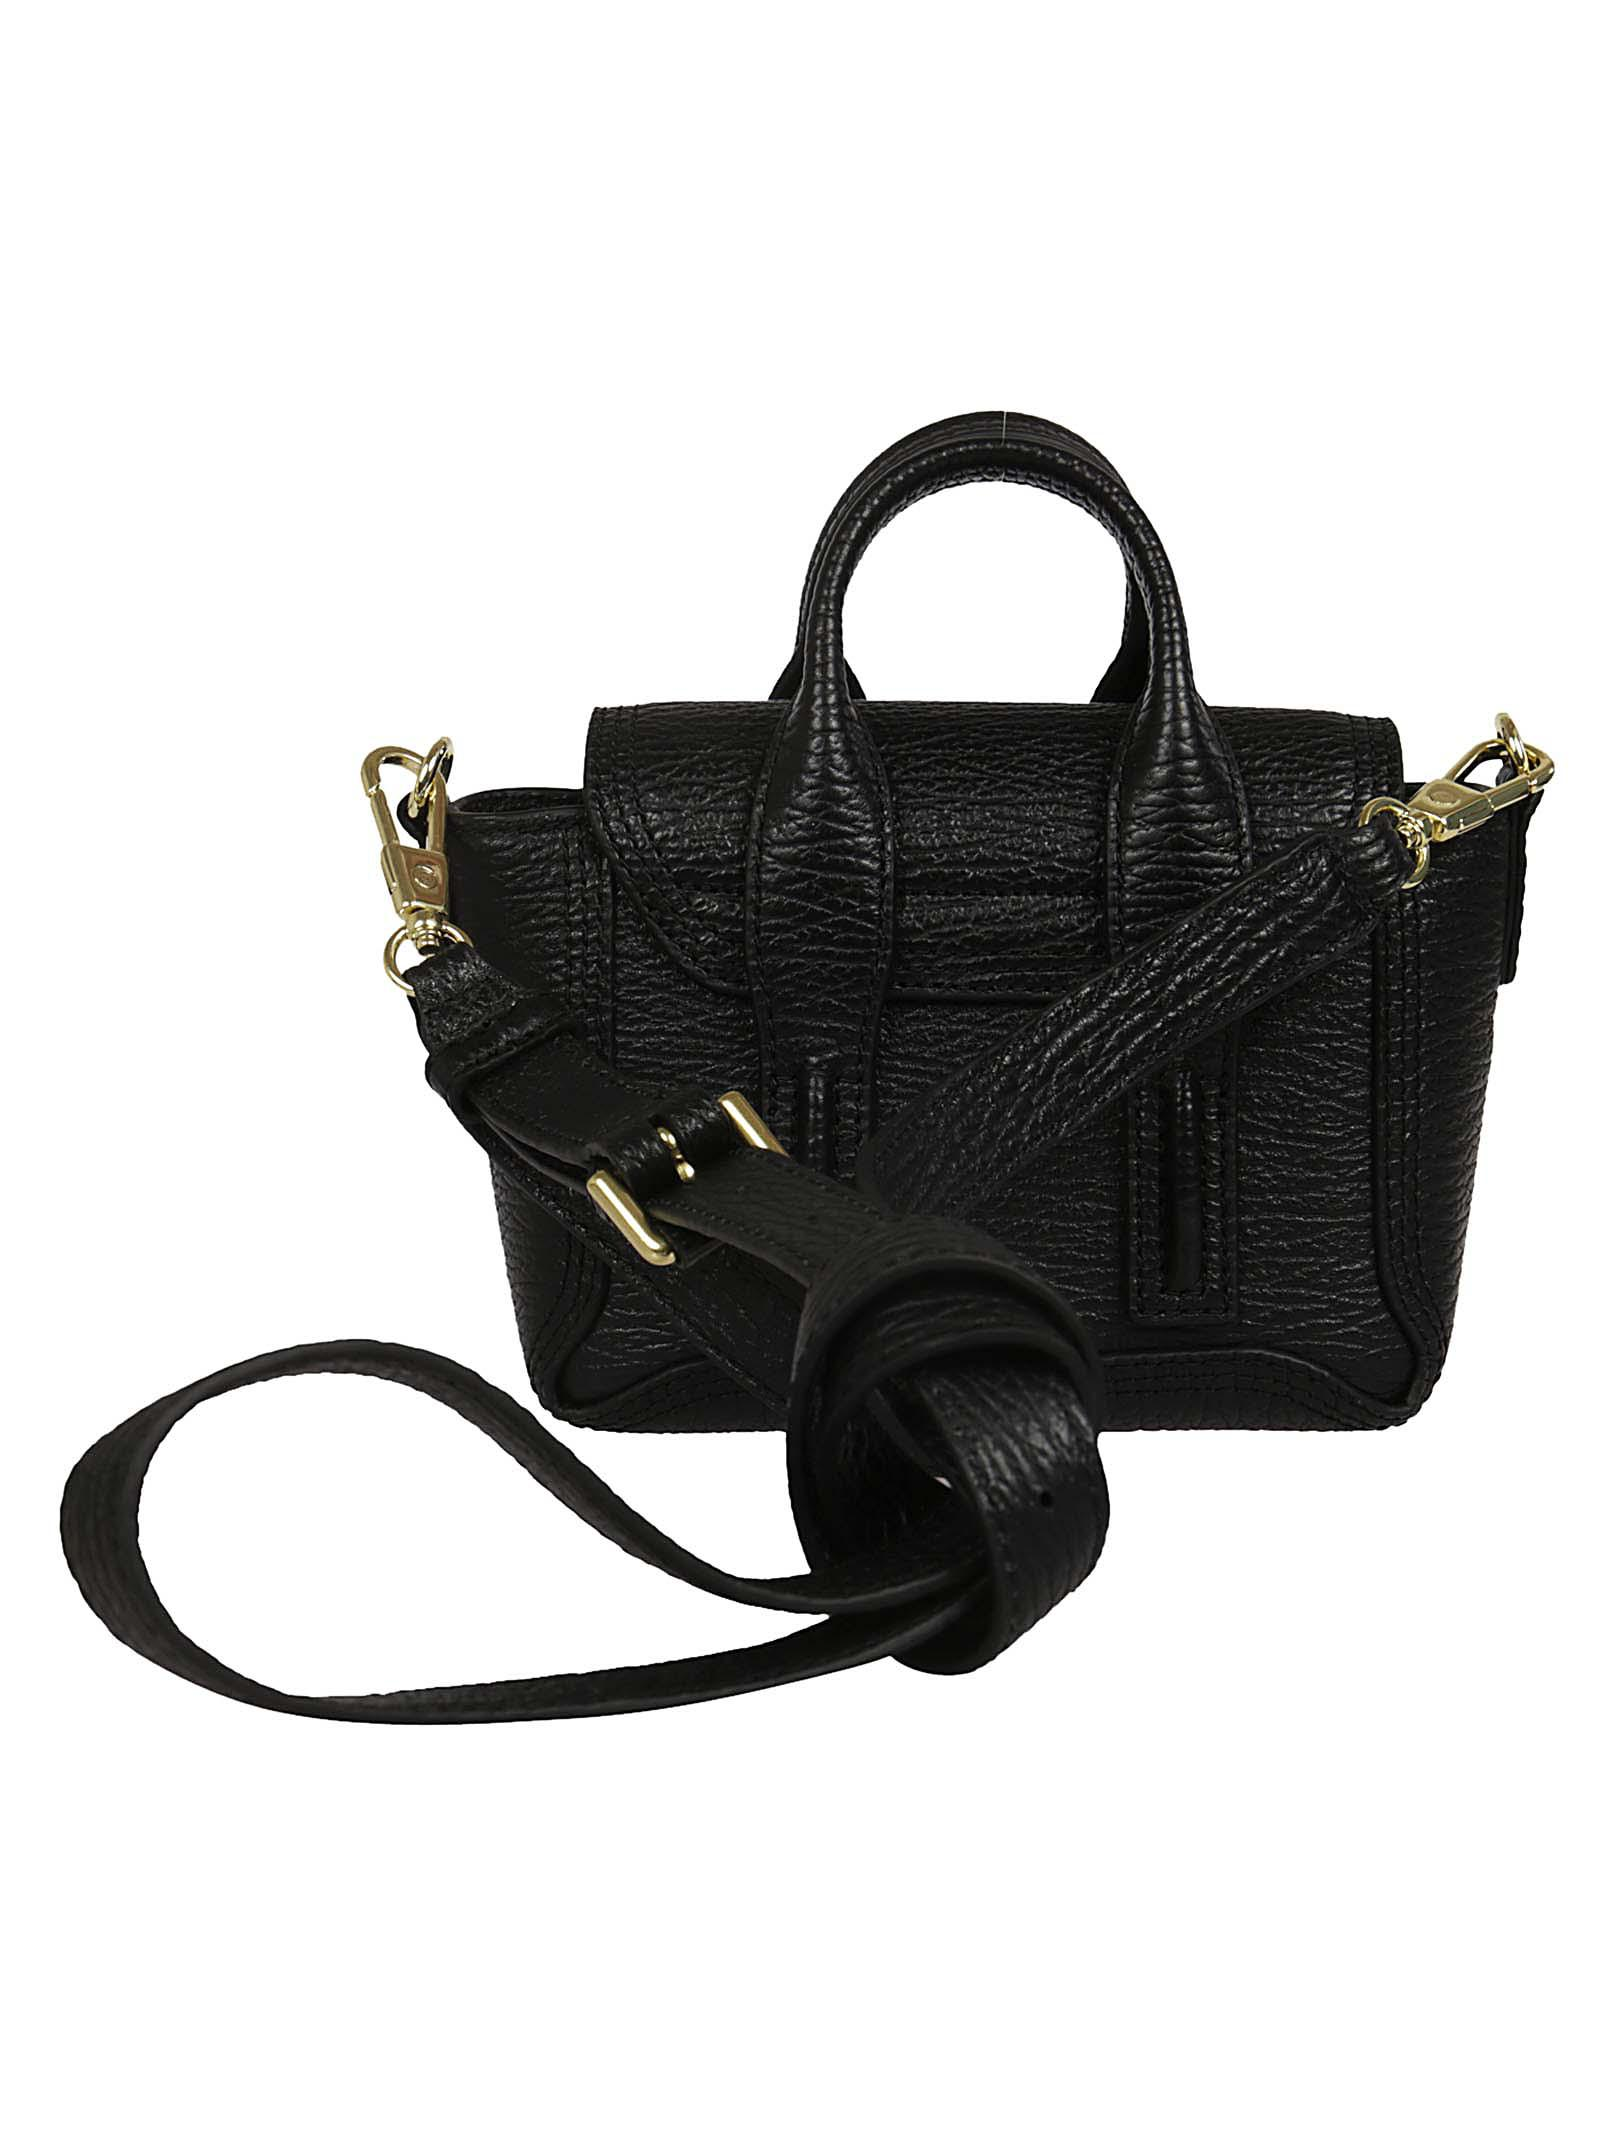 516908f6dca 31-phillip-lim-BA001-BLACK-Zip-Detail-Medium-Crossbody-Bag.jpeg